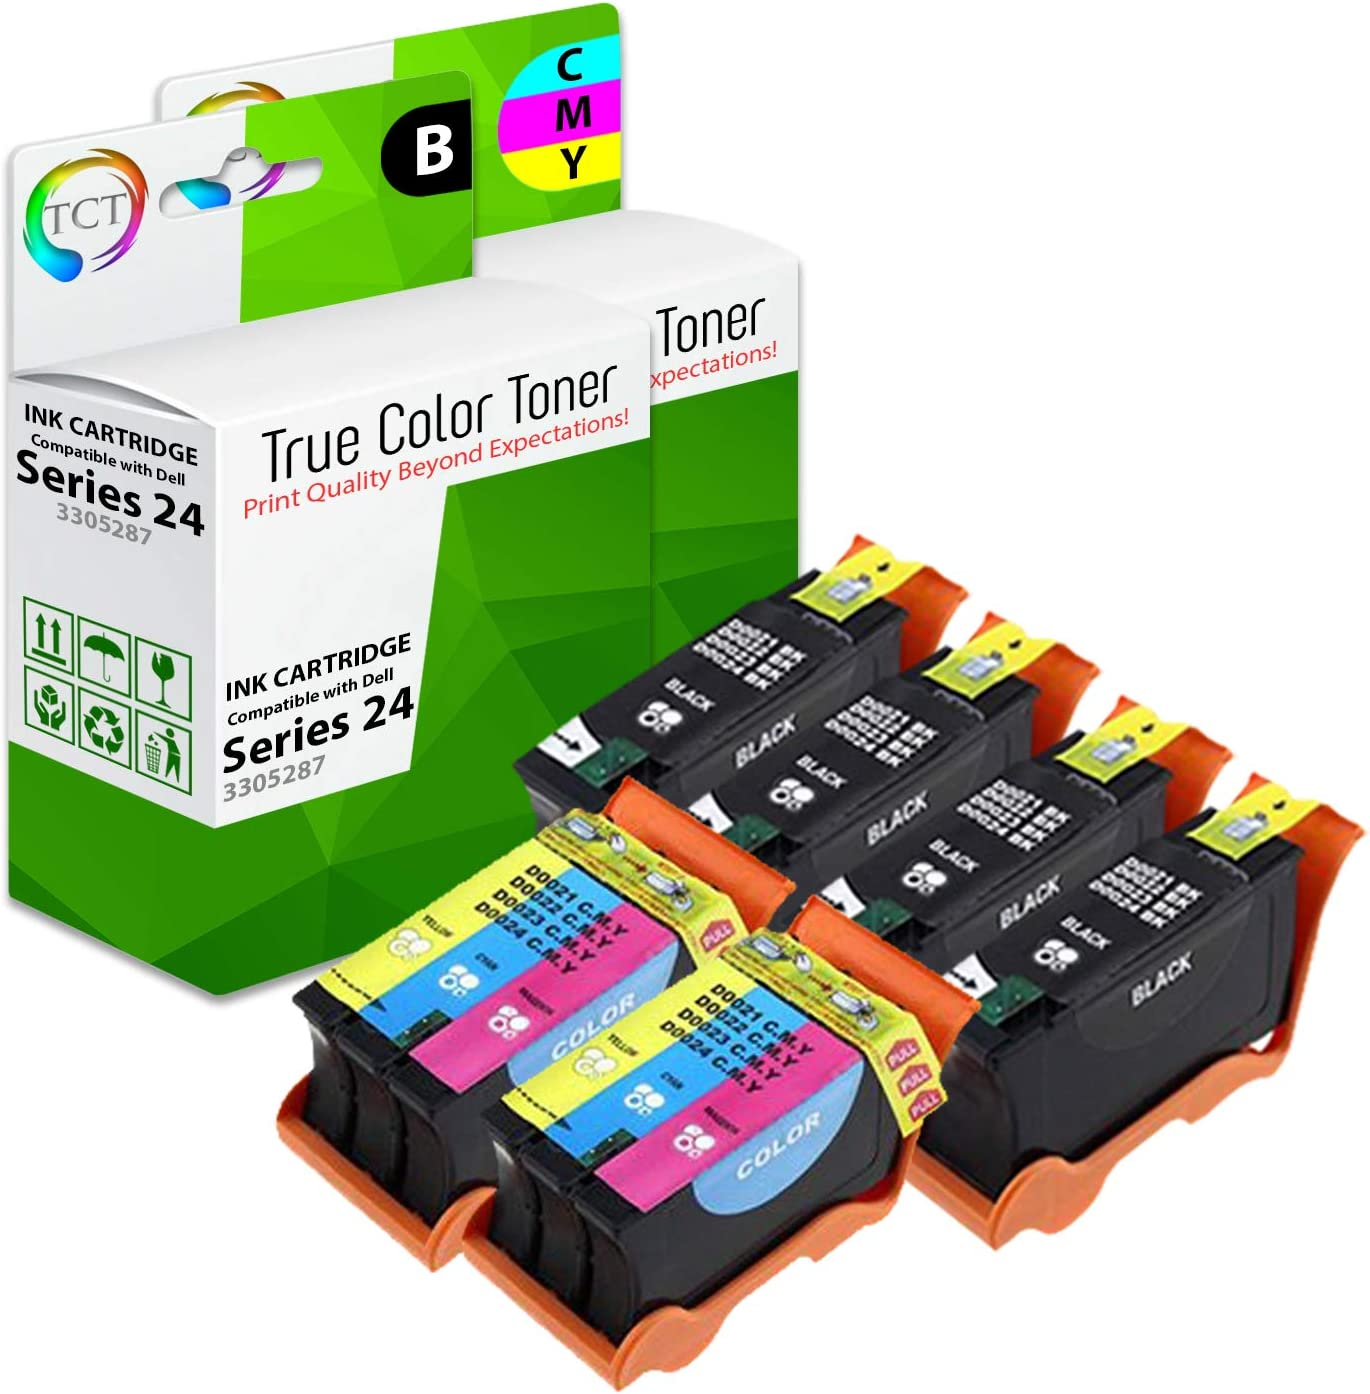 2 Pack 1 Black 330-5287, 1 Color 330-3288 TCT Compatible Ink Cartridge Replacement for Dell 24 Series T109N T110N Works with Dell P713w V715w Printers